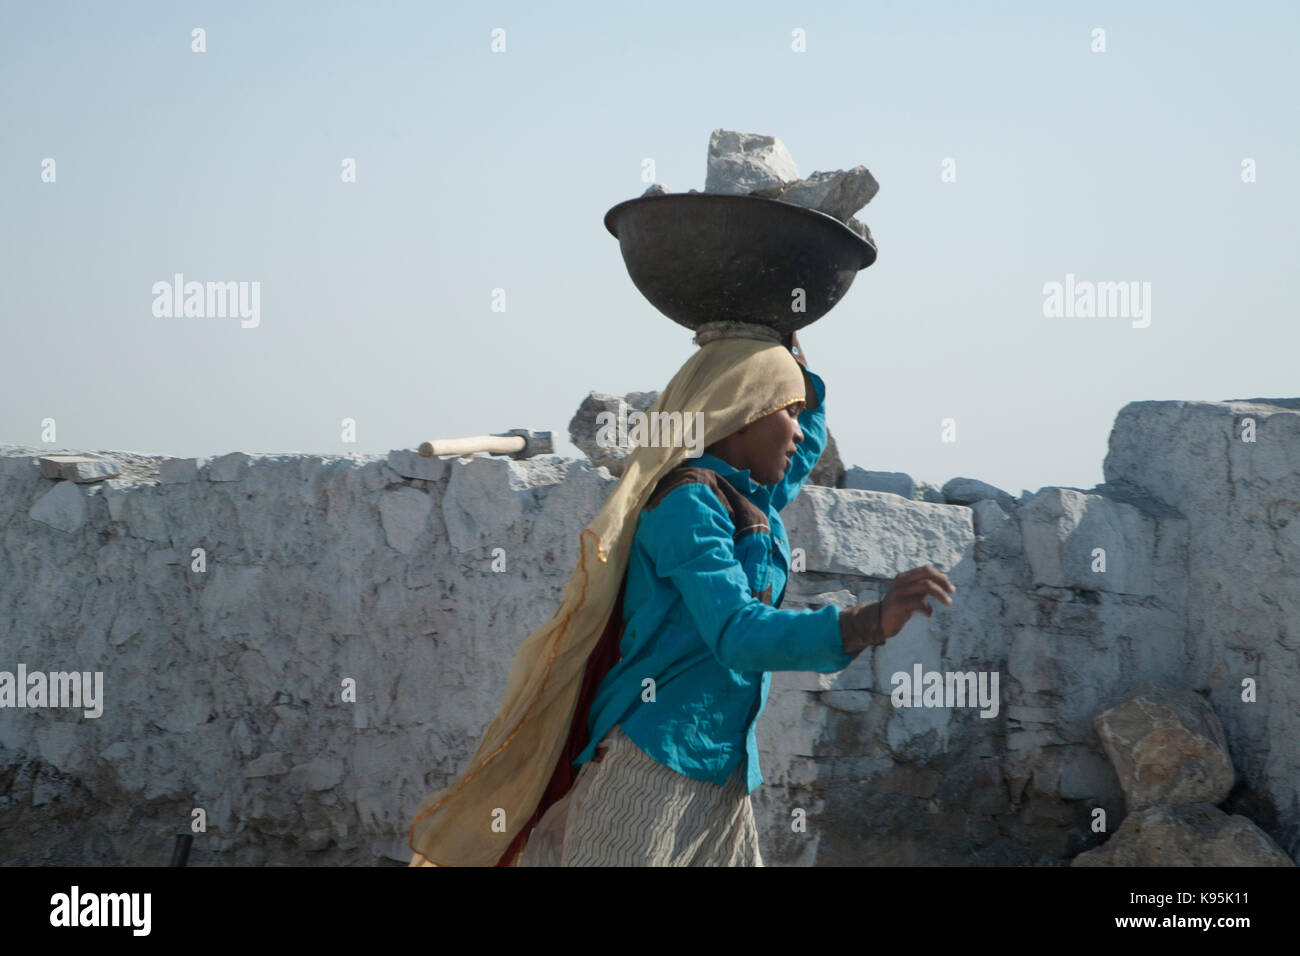 girls working in at the lime kilns, carrying blocks of limestone over to the kilns - Stock Image